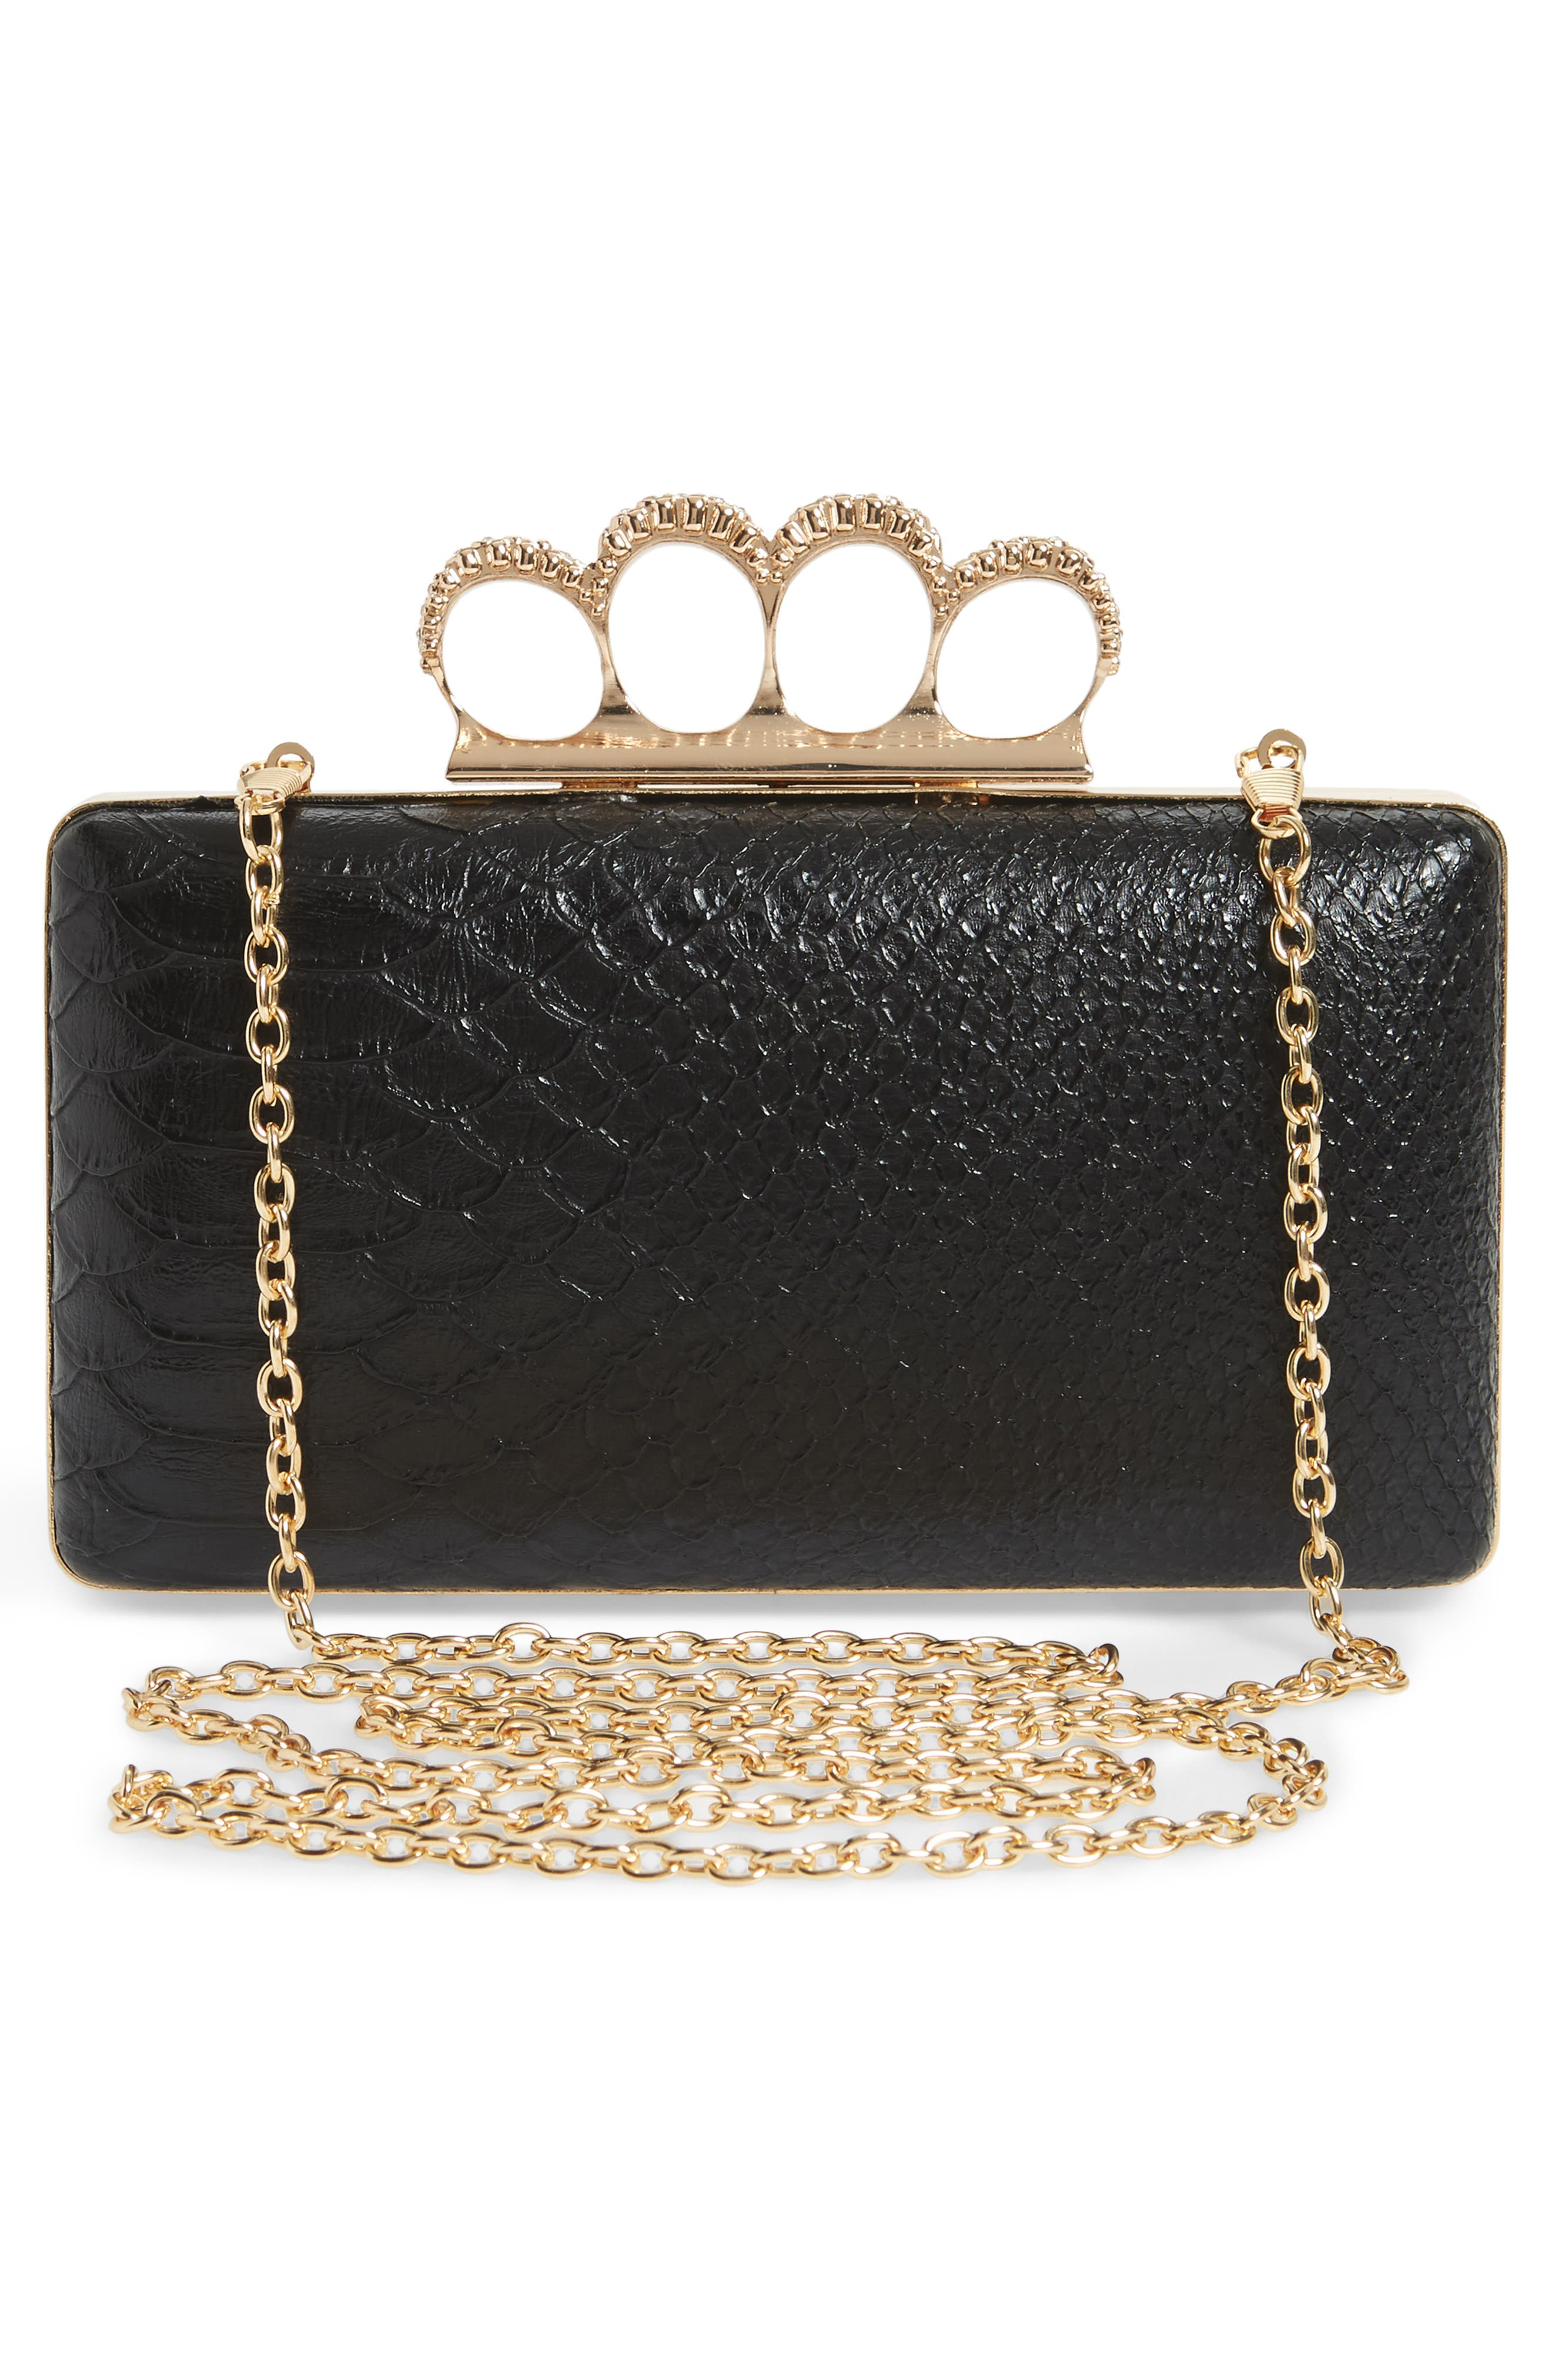 Knuckle Box Clutch,                             Alternate thumbnail 3, color,                             Gold/ Black